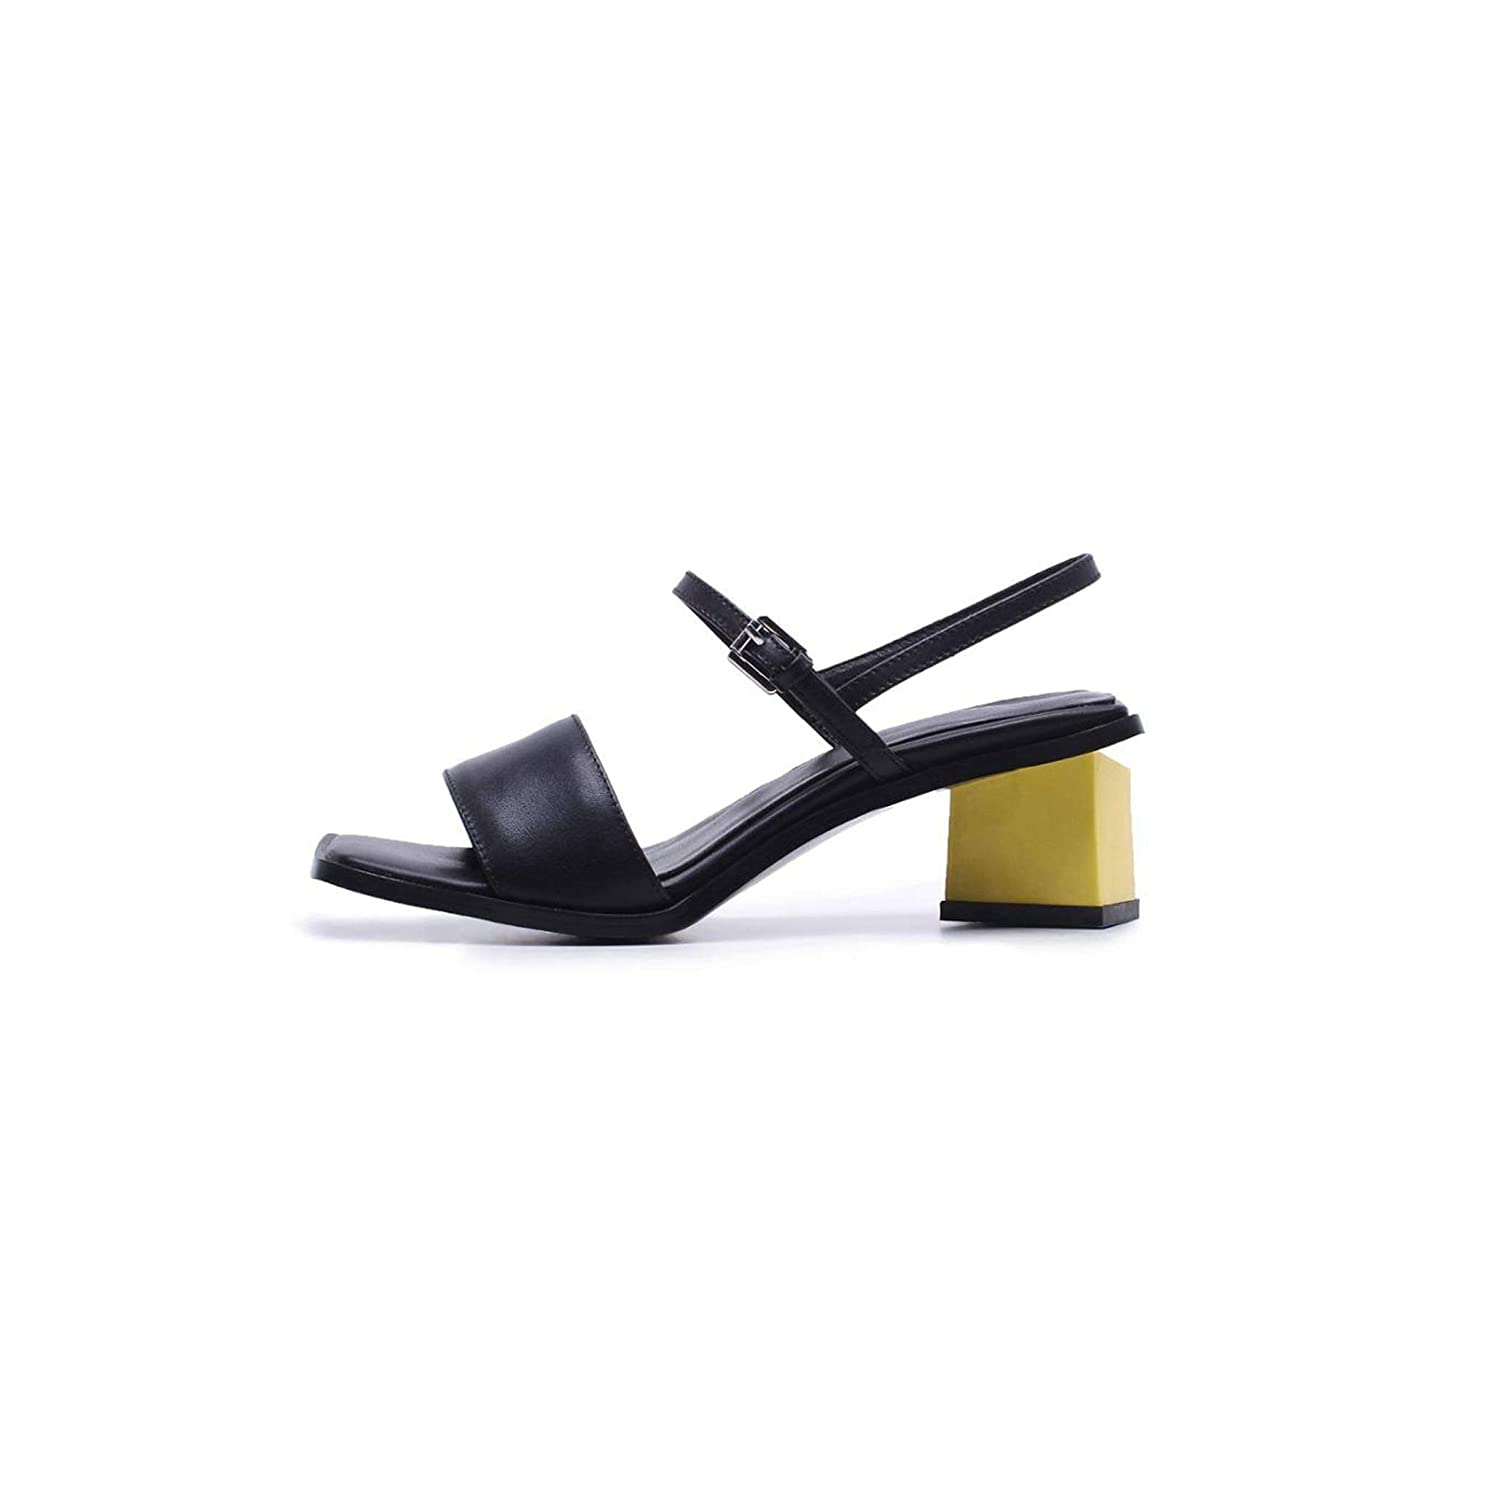 Black Peep Toe High Heels Slingback Mixed colors Summer shoes Lady Concise Party Elegant Sandals